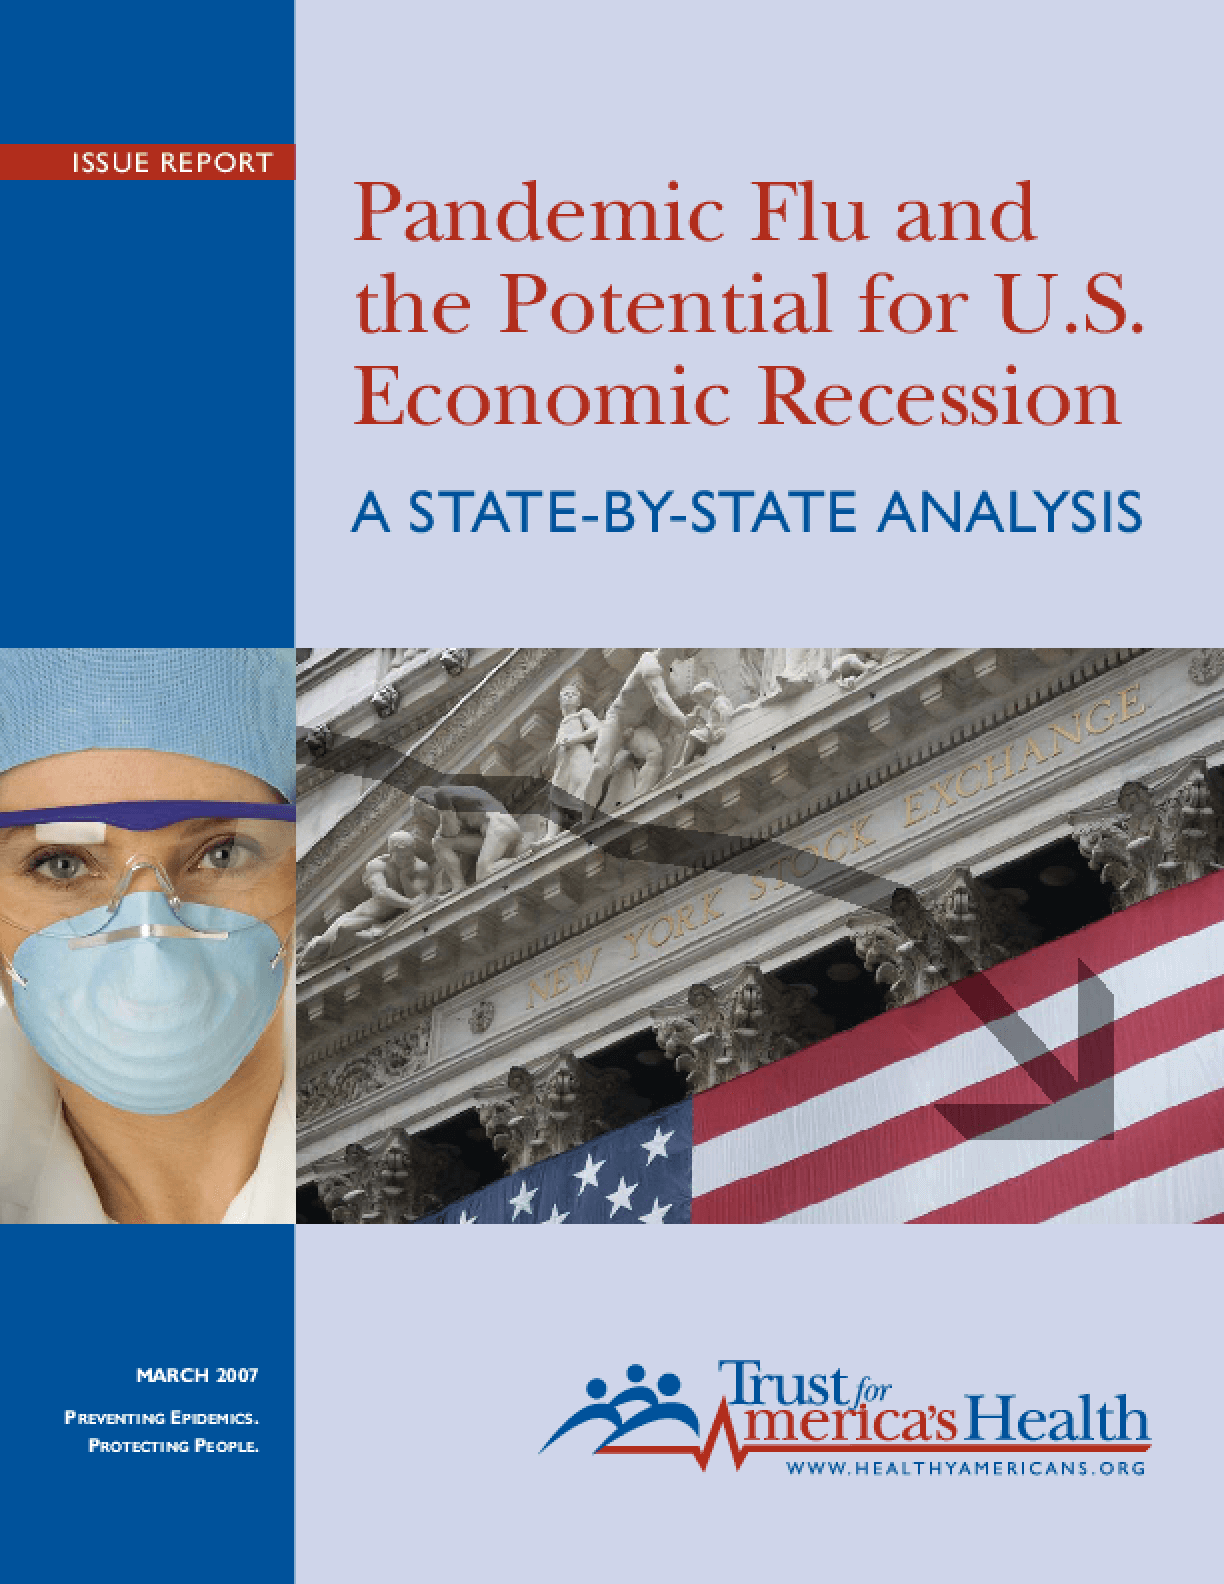 Pandemic Flu and the Potential for U.S. Economic Recession: A State-by-State Analysis